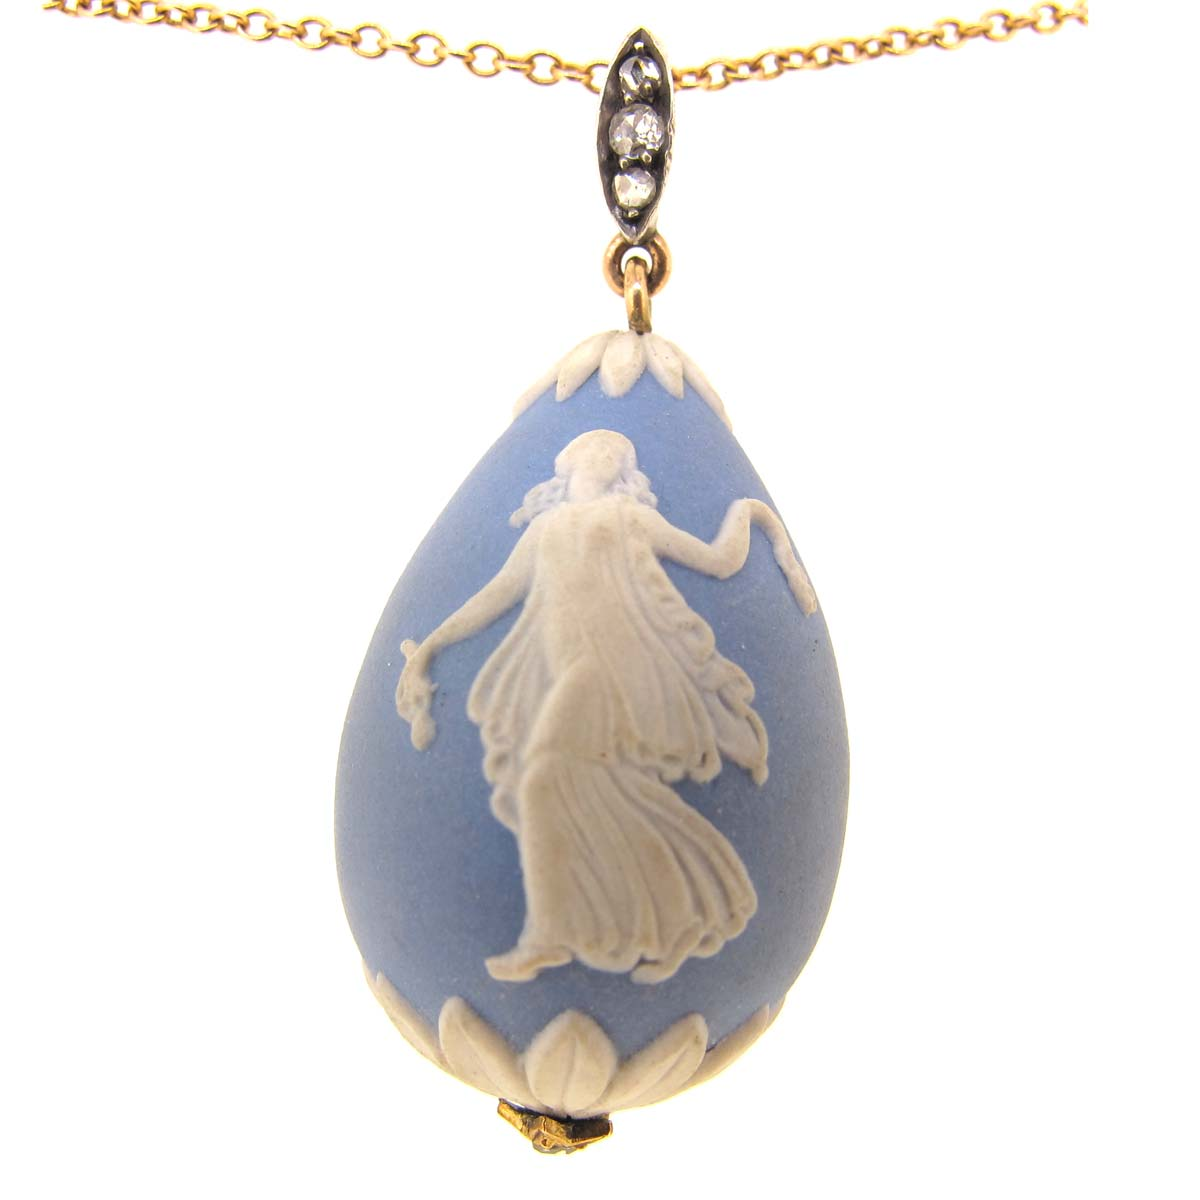 Wedgwood Blue Jasperware Egg Shaped Pendant